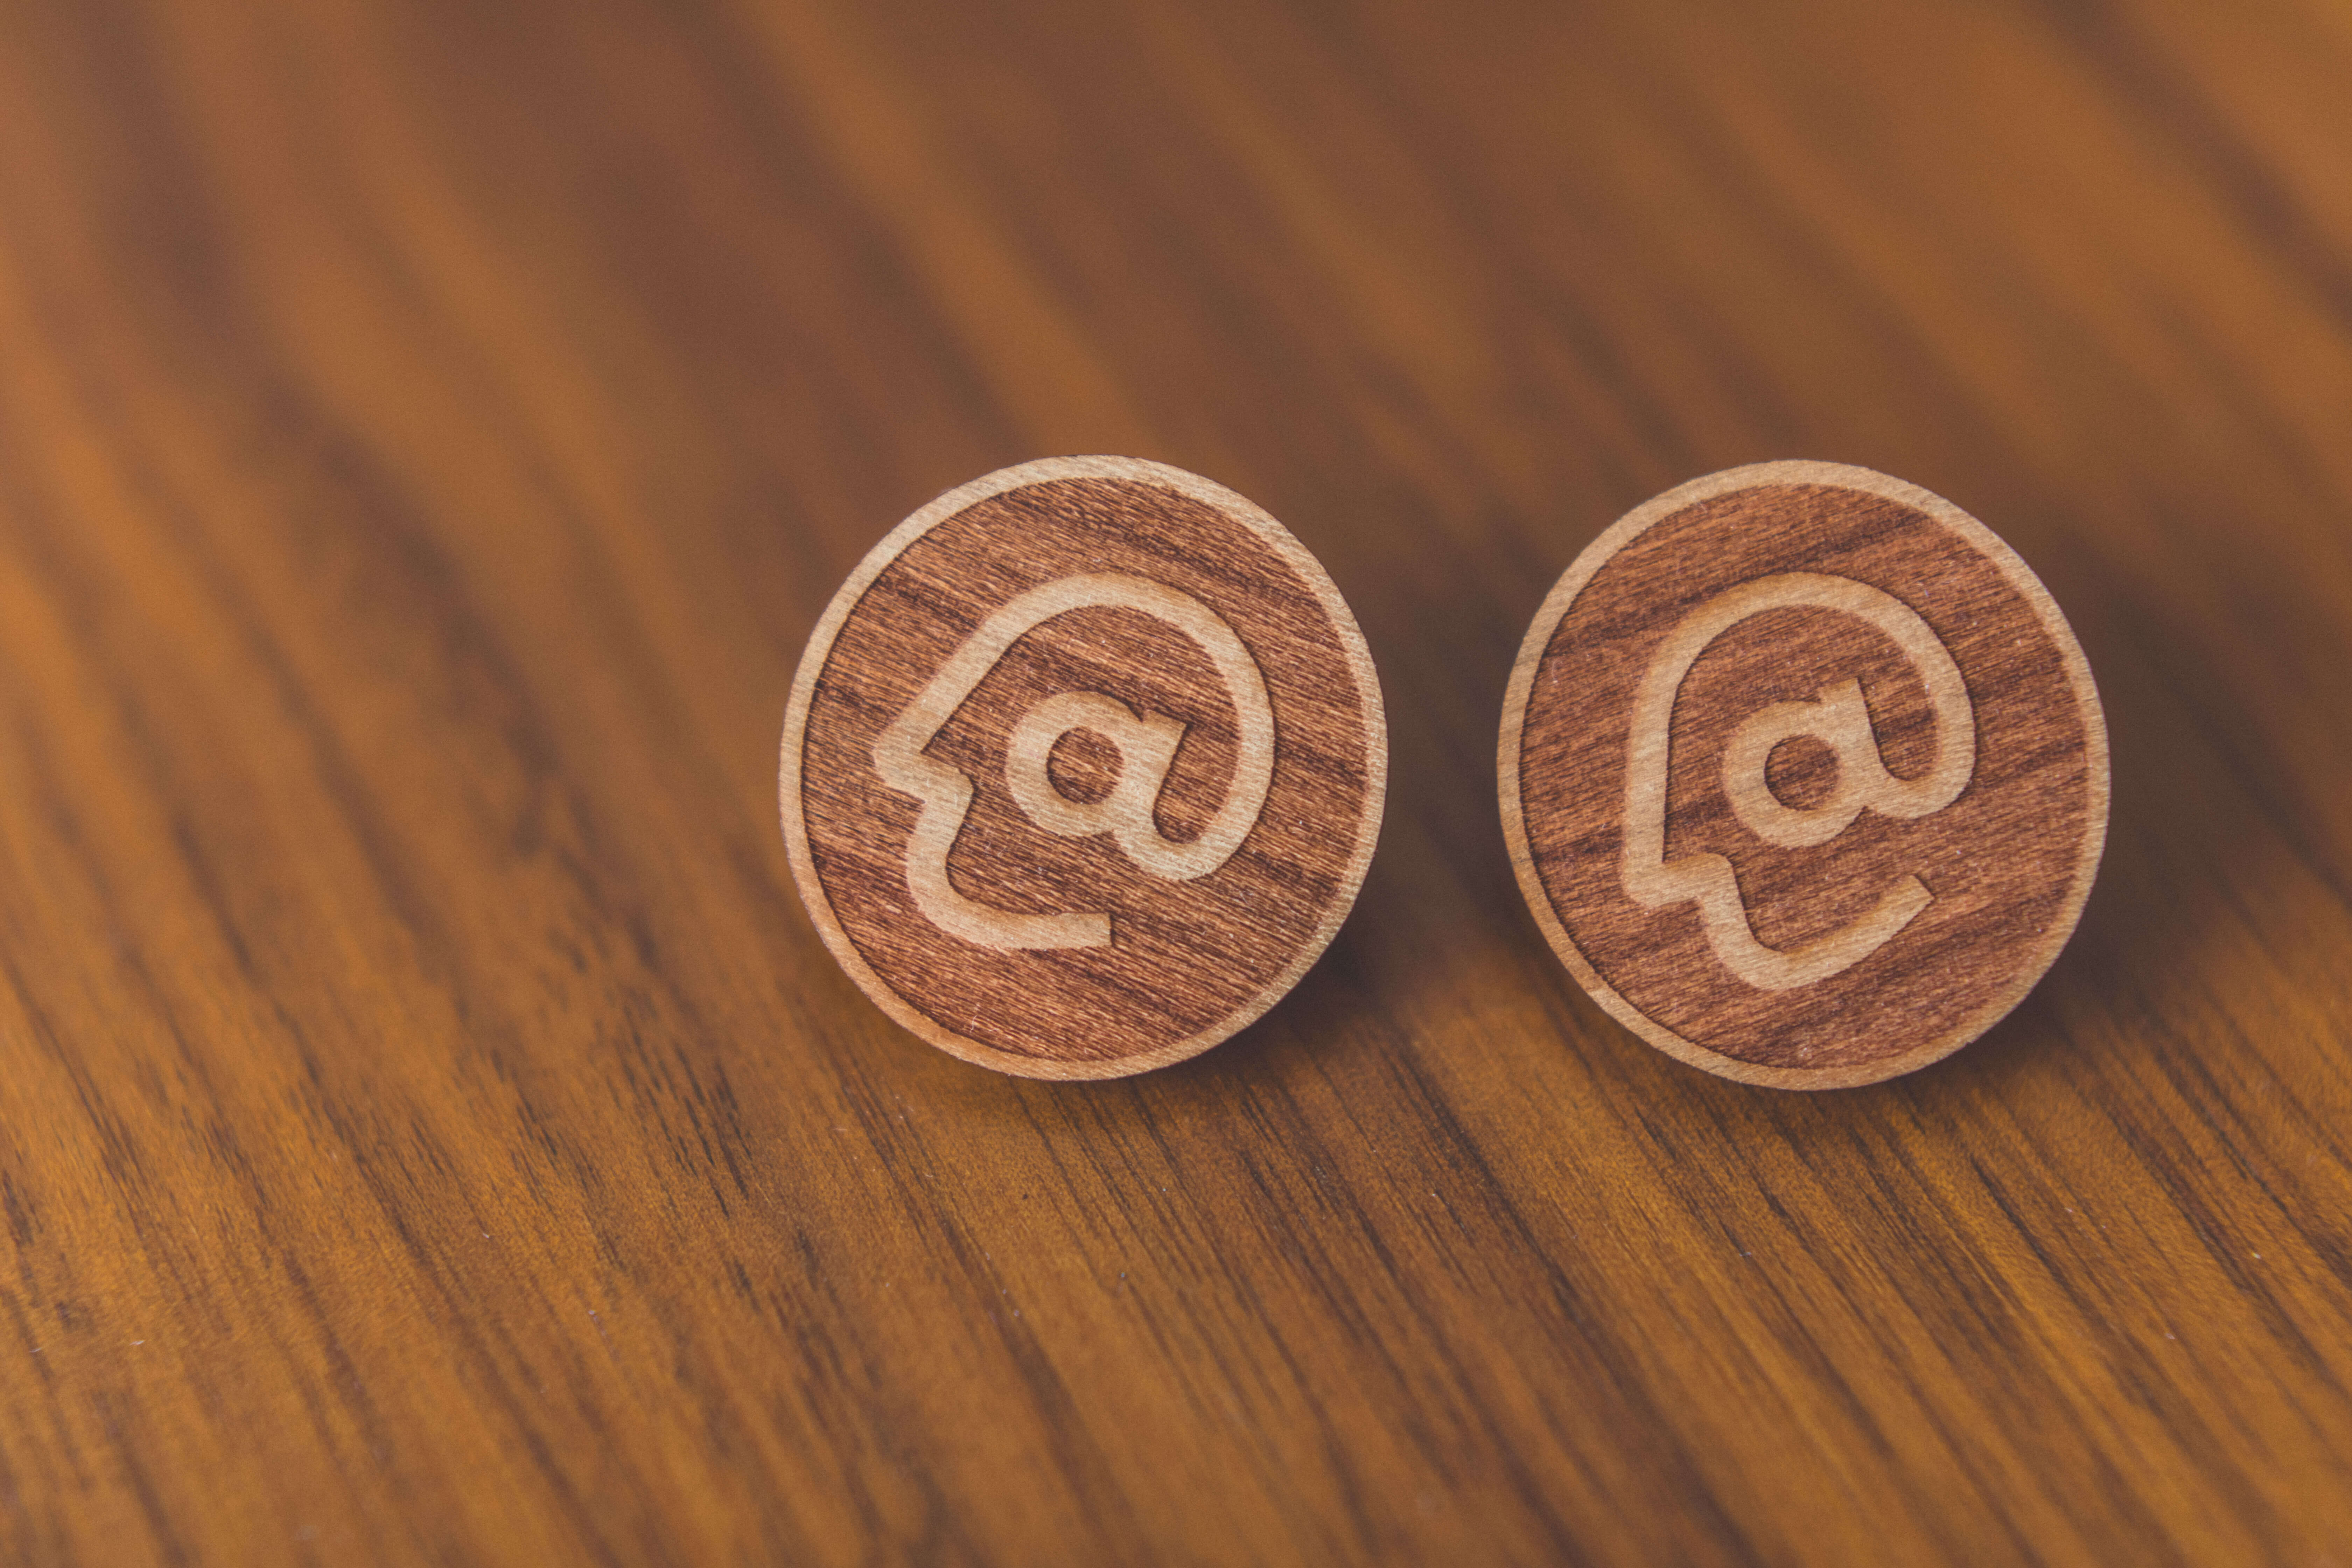 Close-up of two wood pins etched with the Acumen logo.